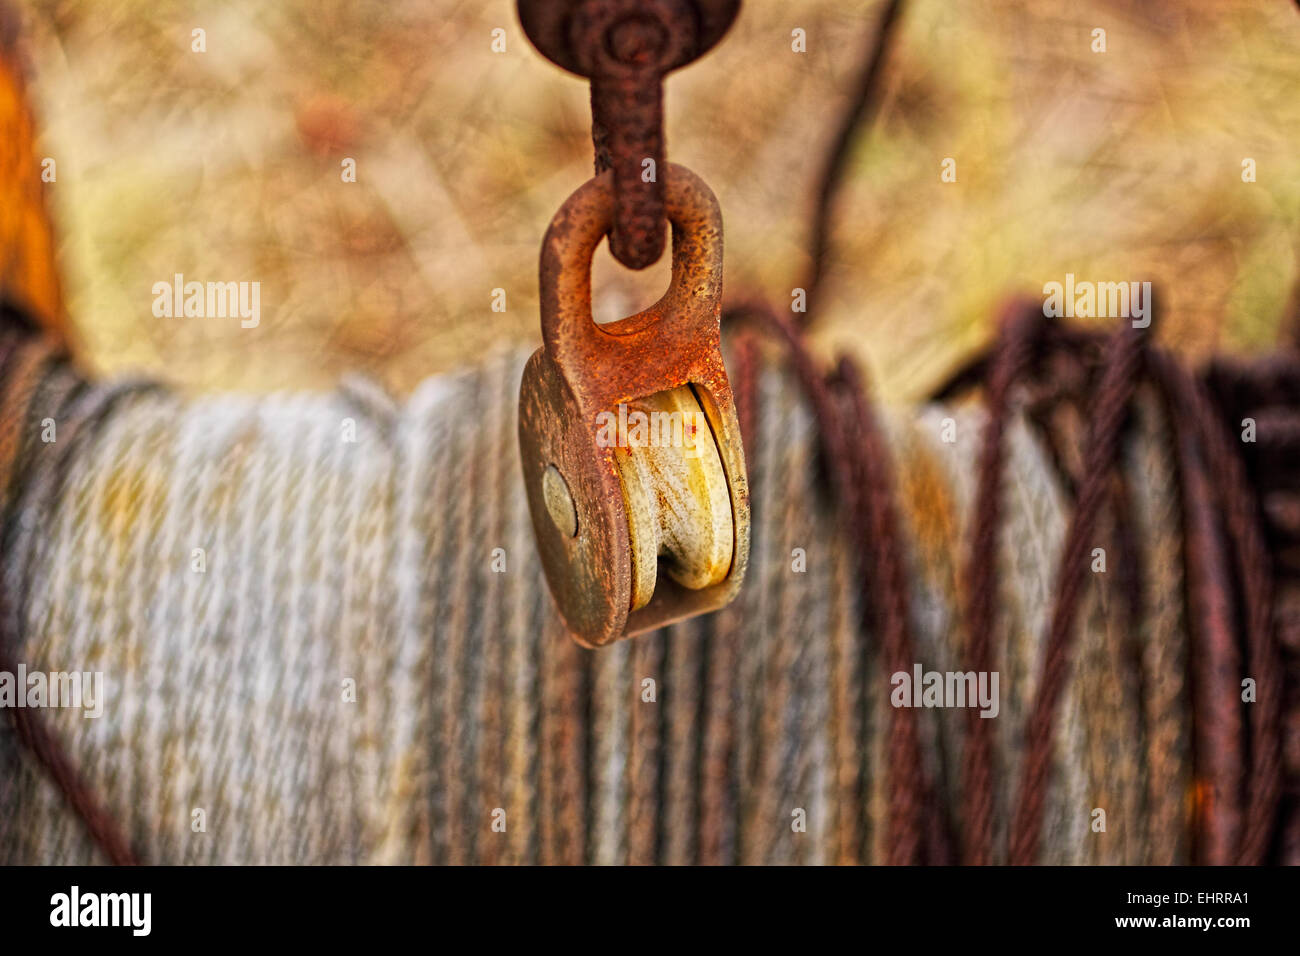 Tackle to pull small boats on shore. Photographed up close, with the wire in the background. - Stock Image